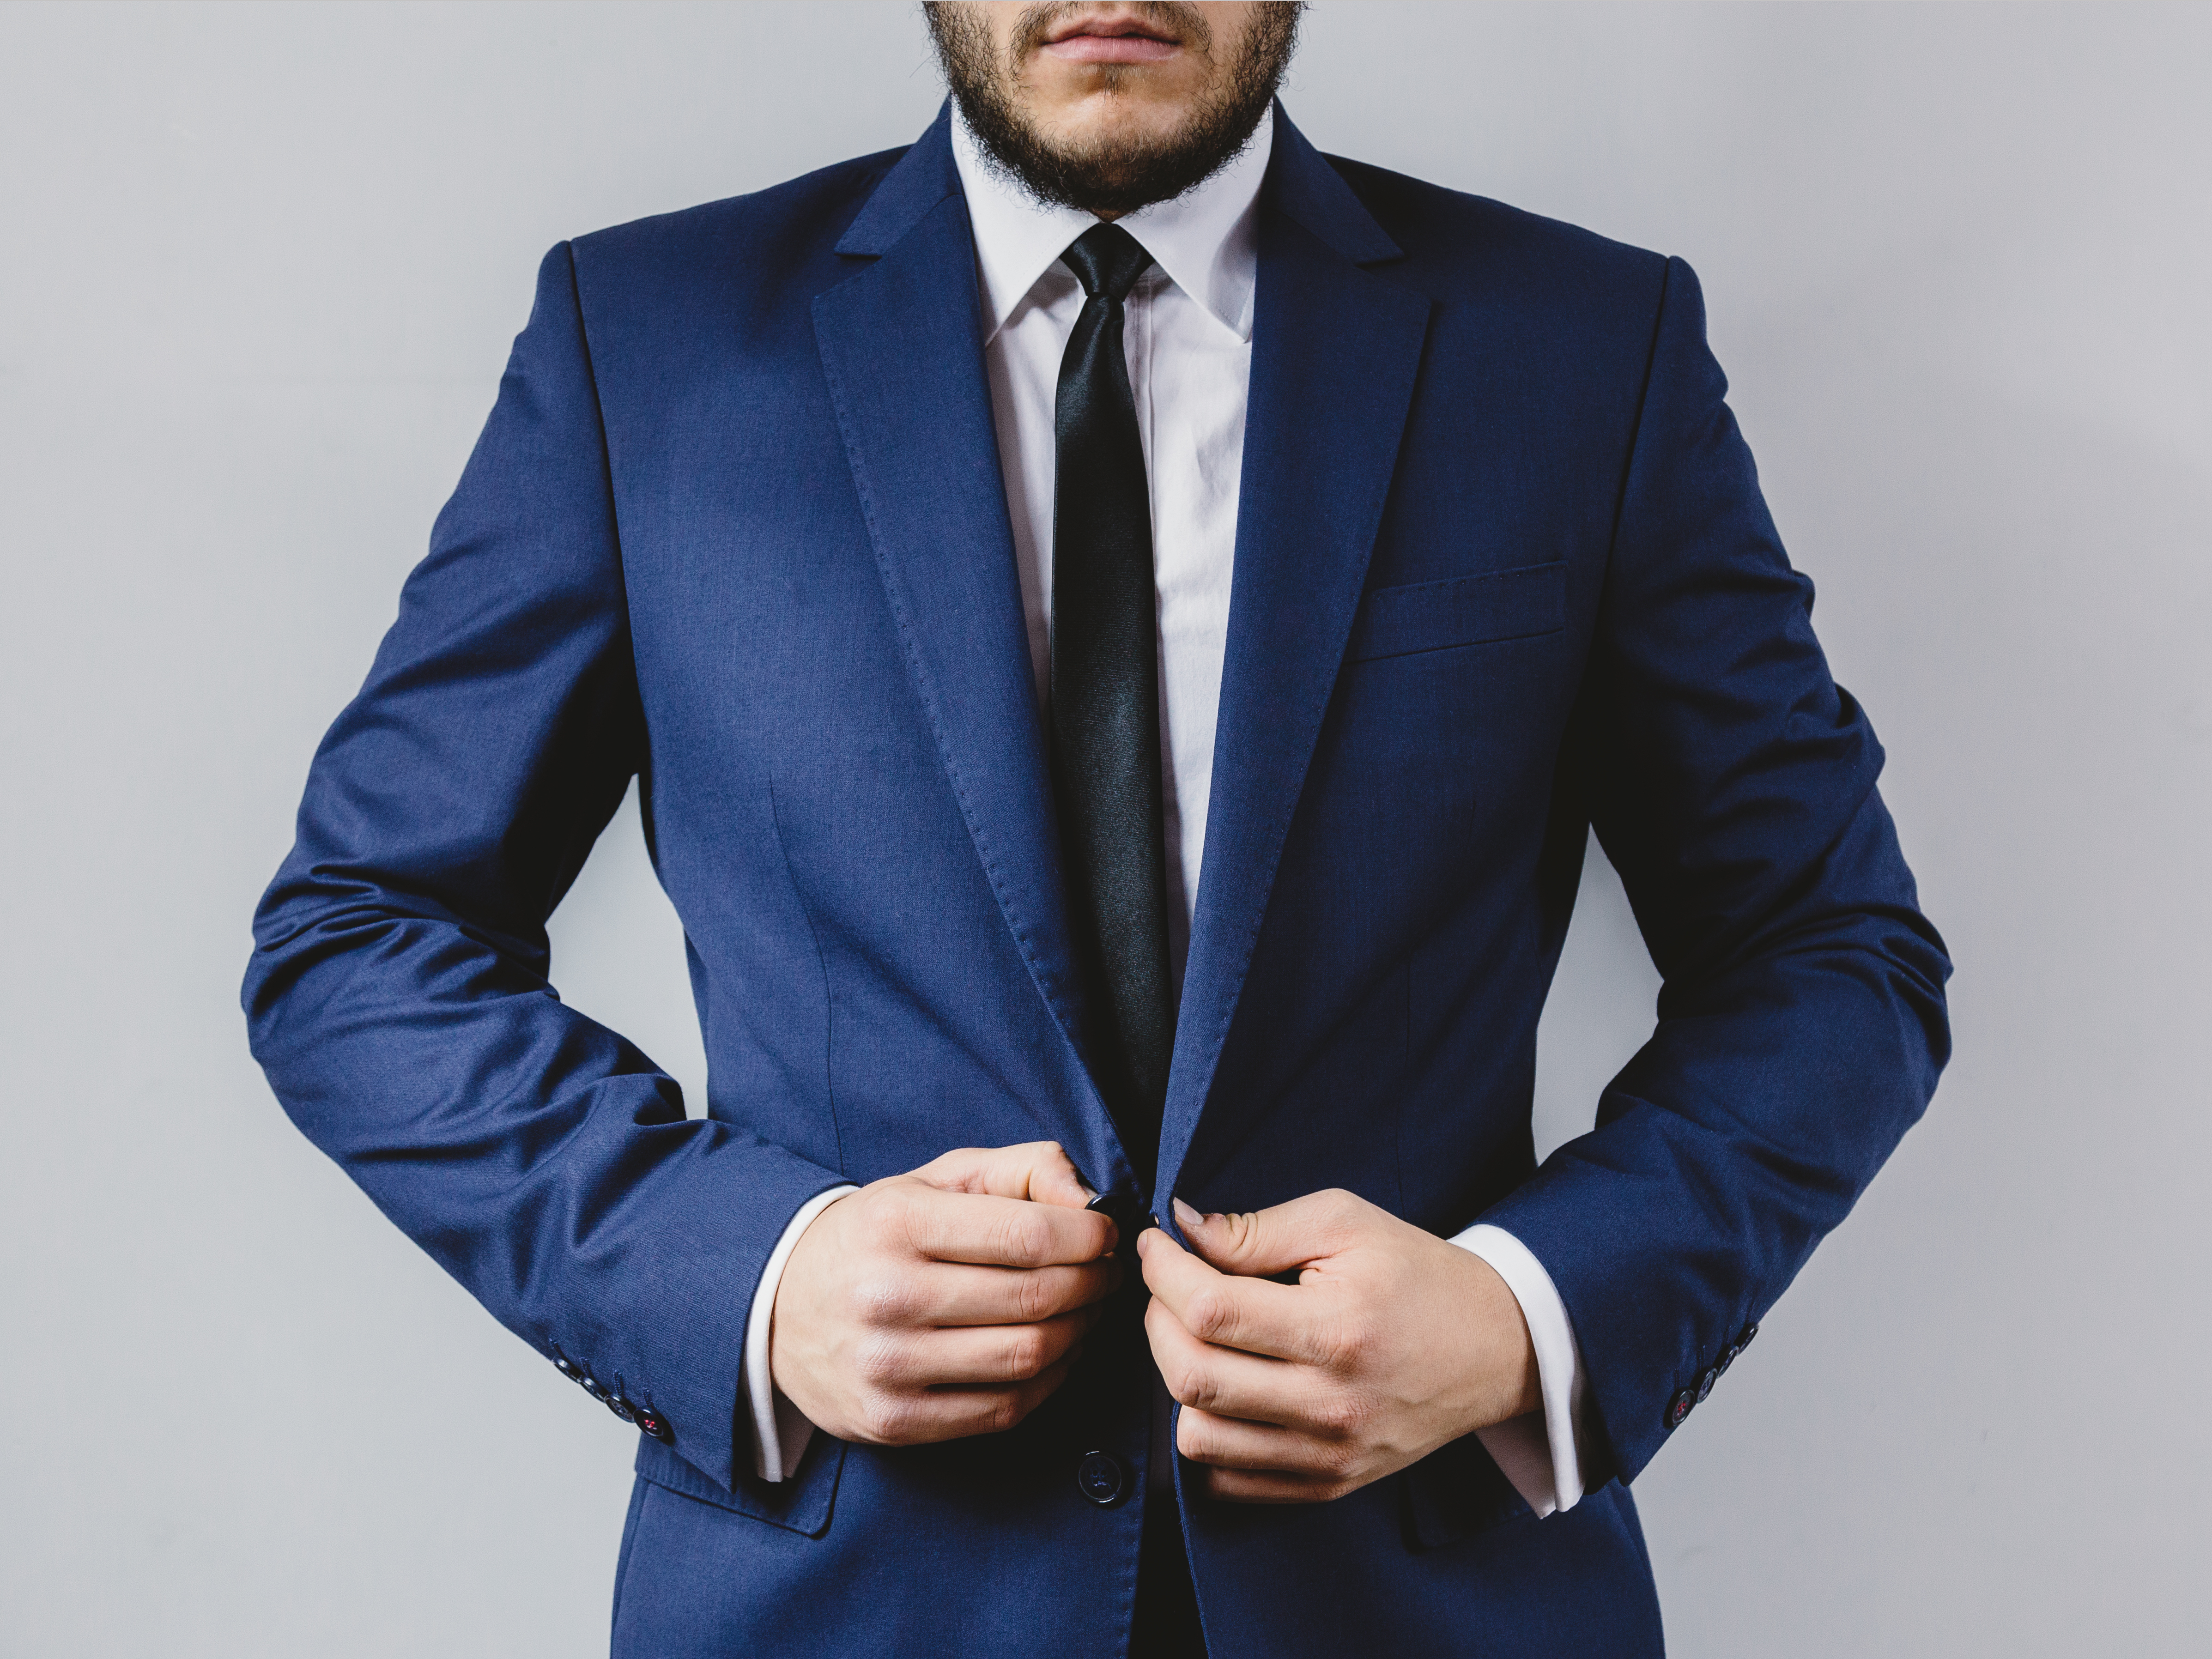 Dress to impress when starting a business